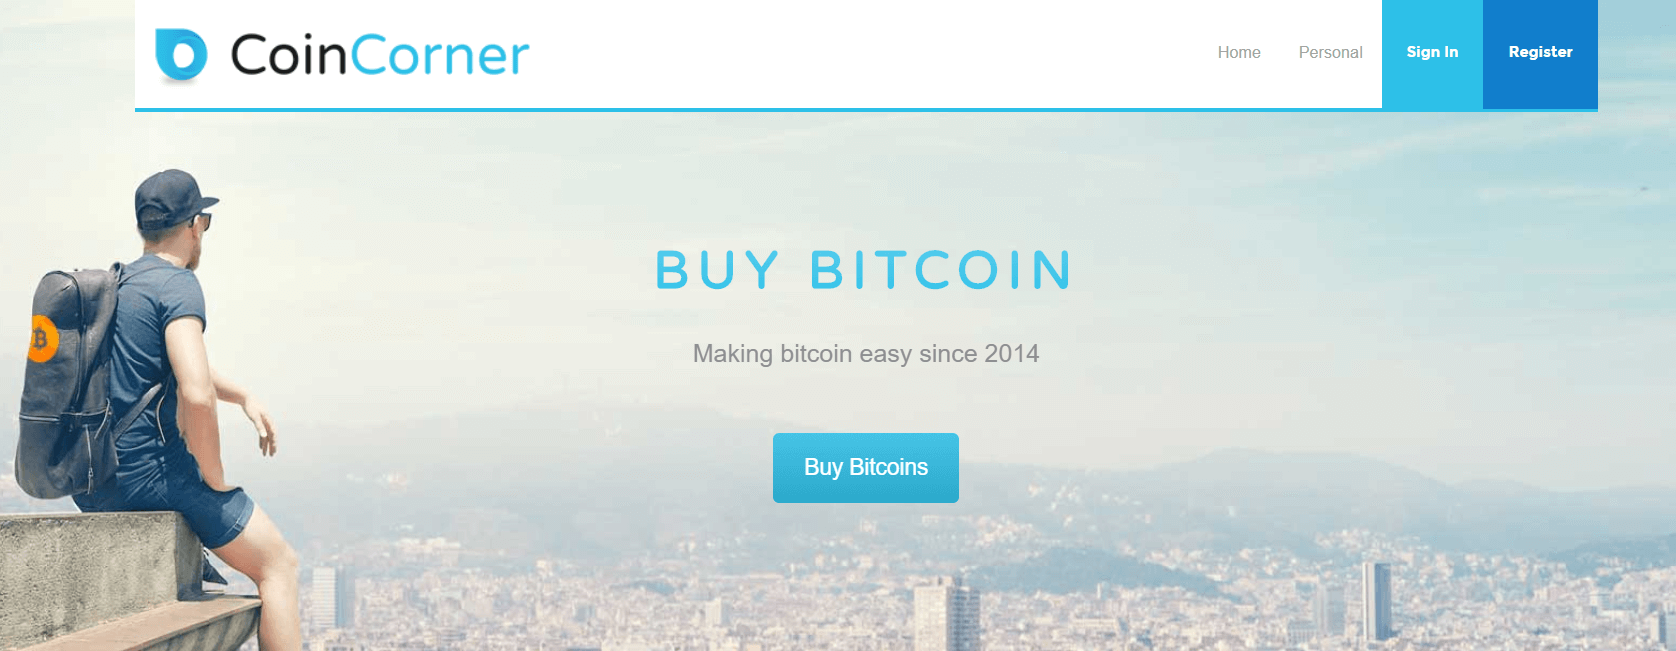 CoinCorner bitcoin exchange